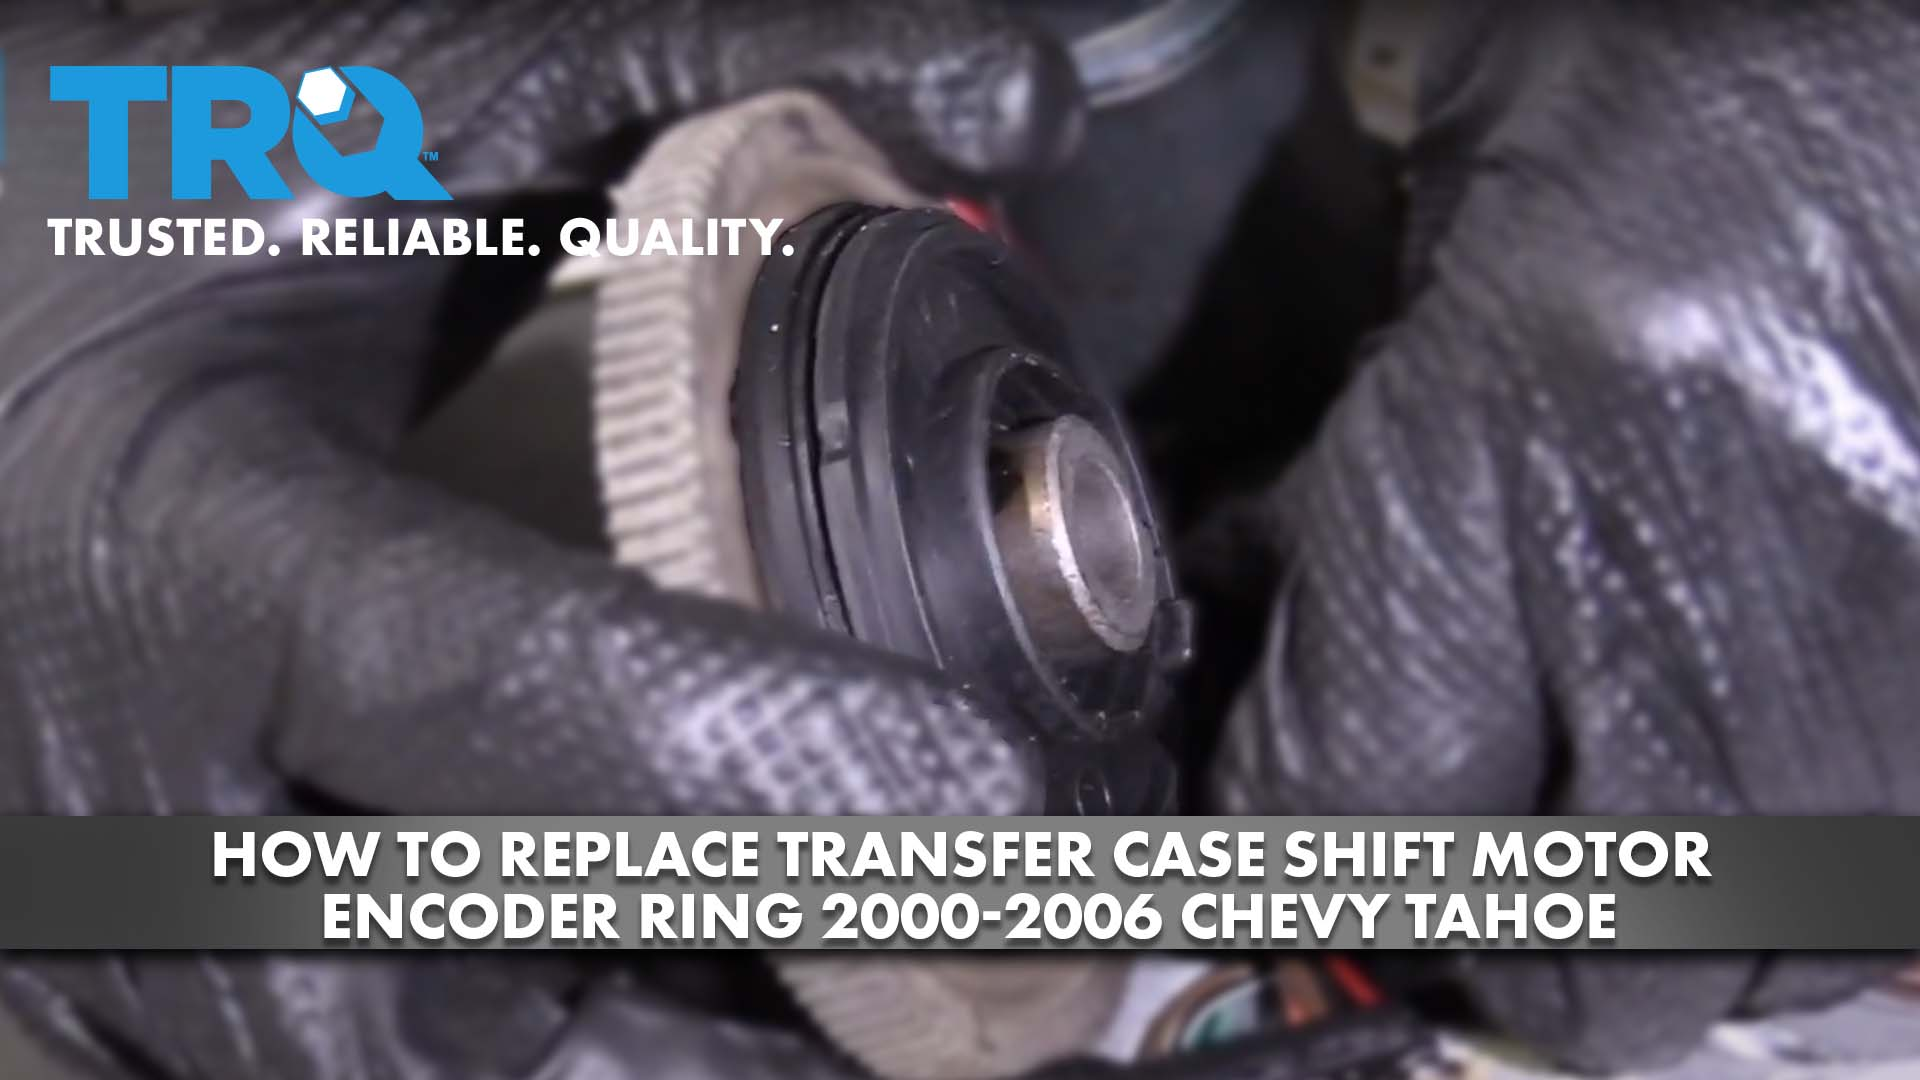 How To Replace Transfer Case Shift Motor Encoder Ring 2000-06 Chevy Tahoe